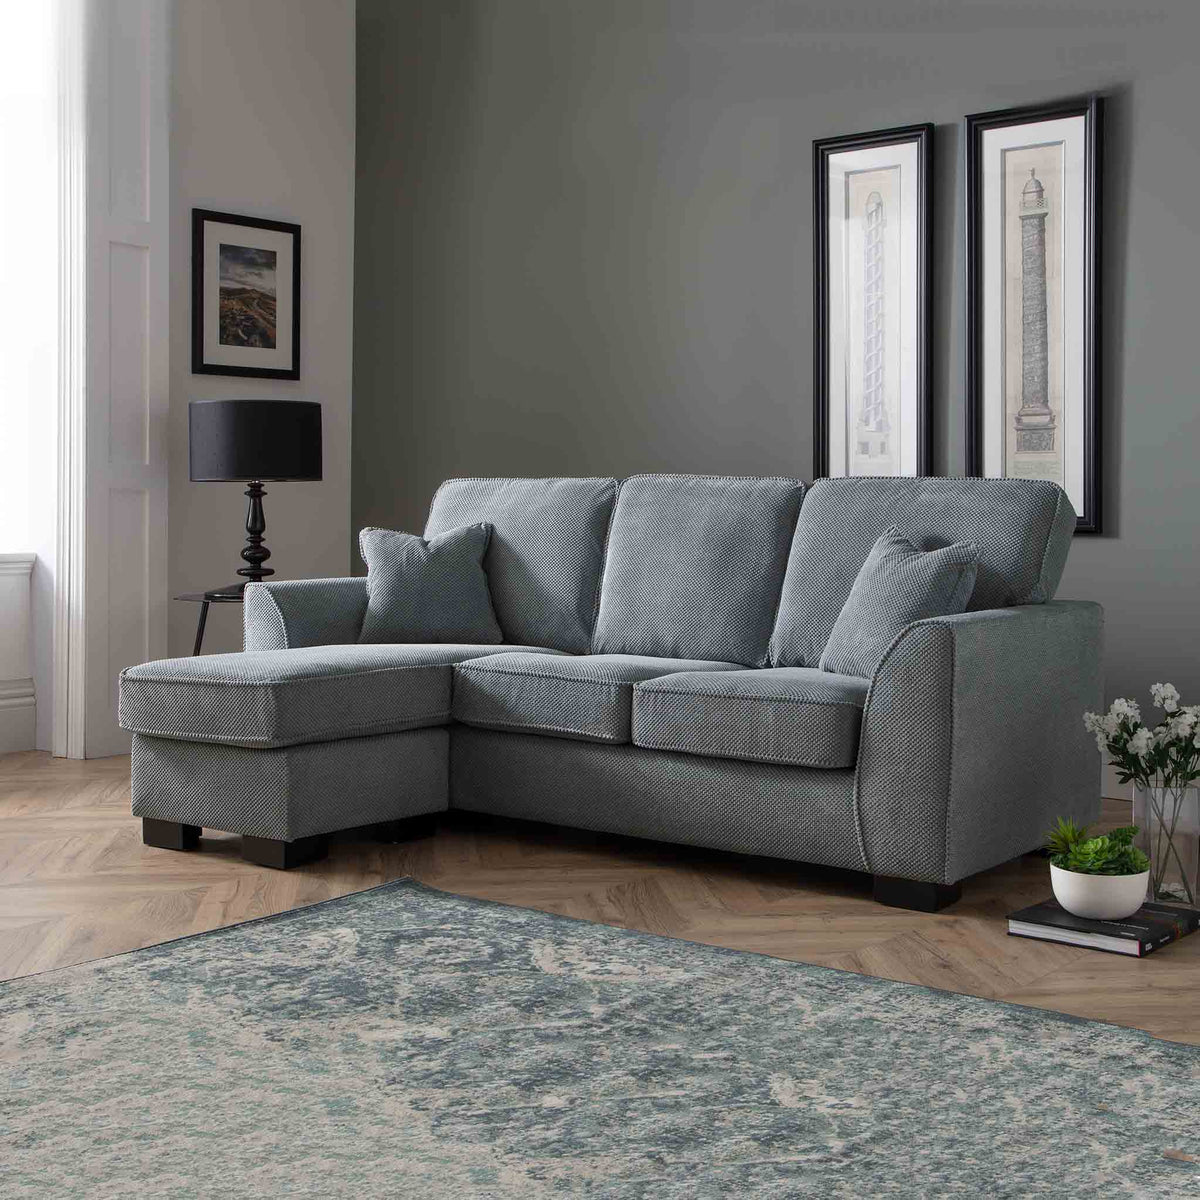 Dallas Charcoal Corner Chaise Sofa - Lifestyle